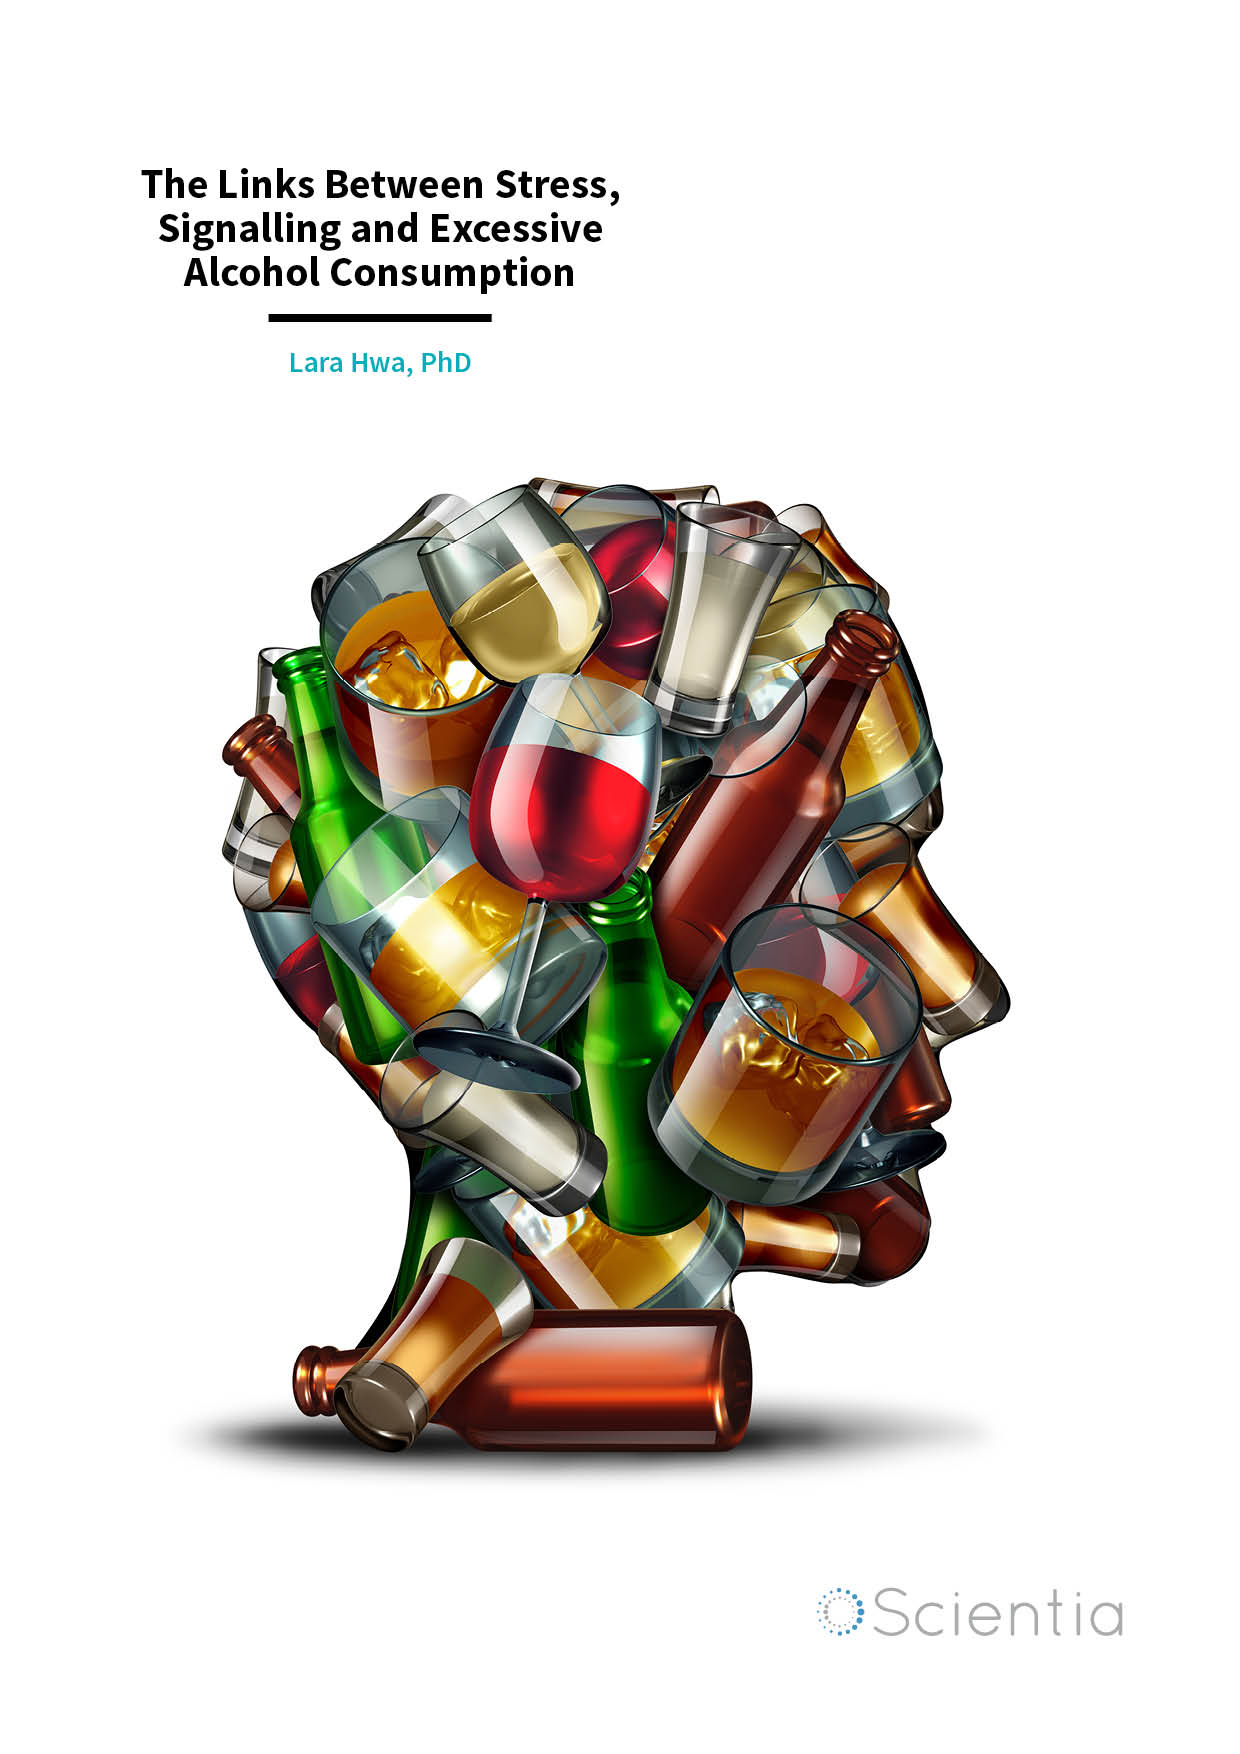 Dr Lara Hwa – The Links Between Stress, Signalling and Excessive Alcohol Consumption